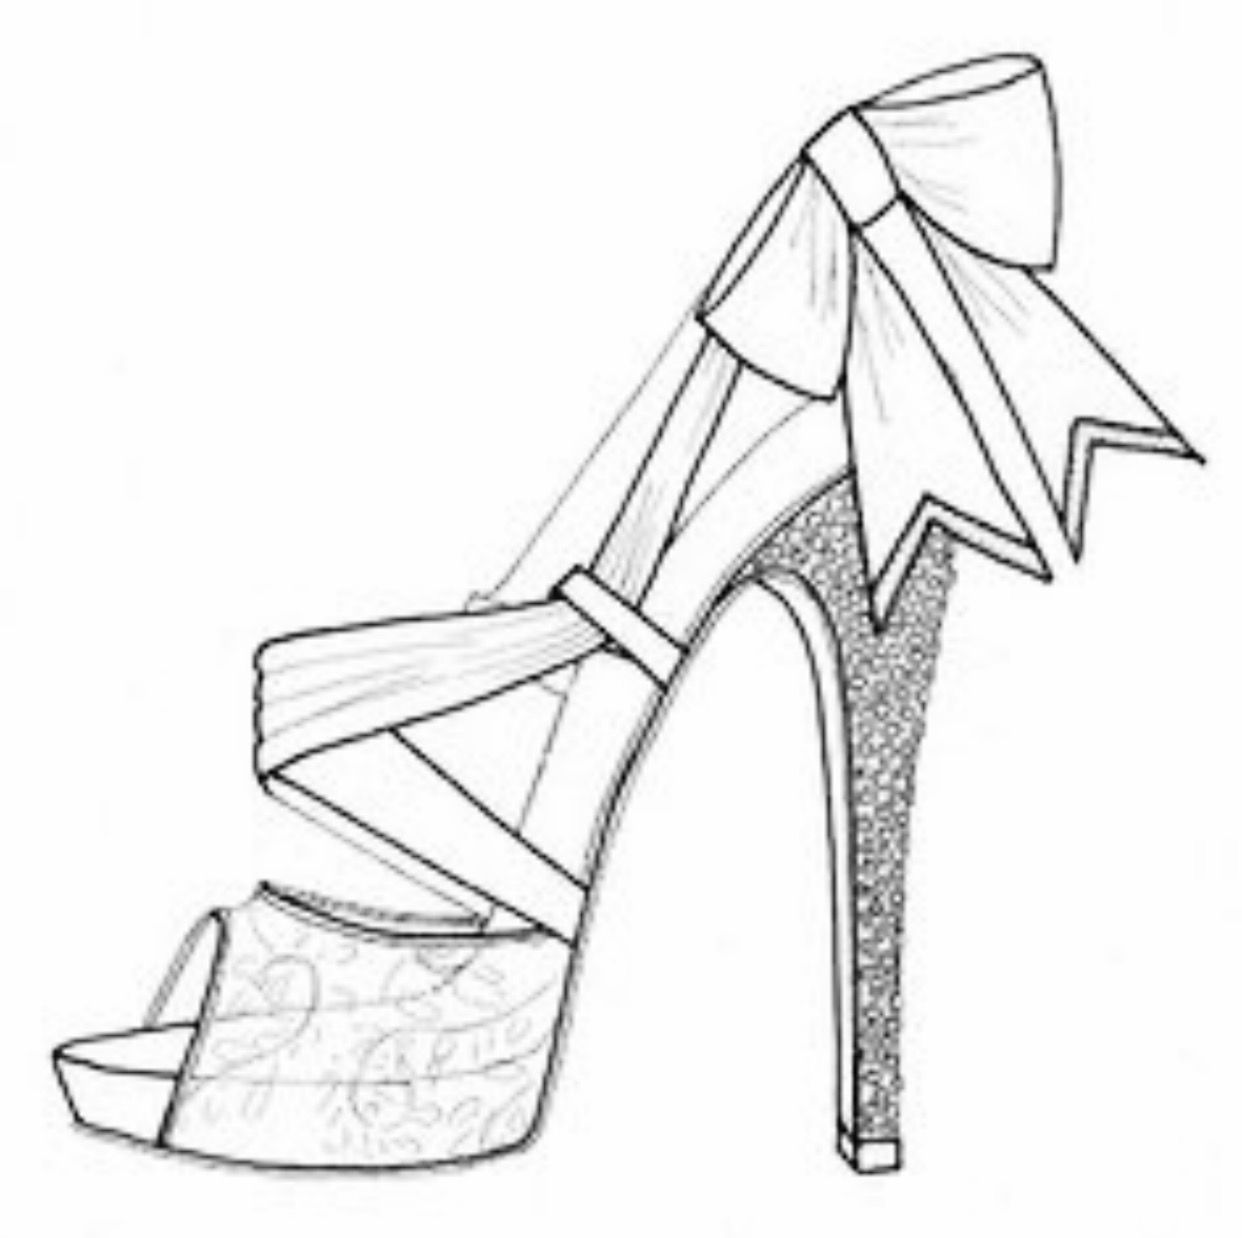 Coloring pages nike shoes - Find This Pin And More On Color My World